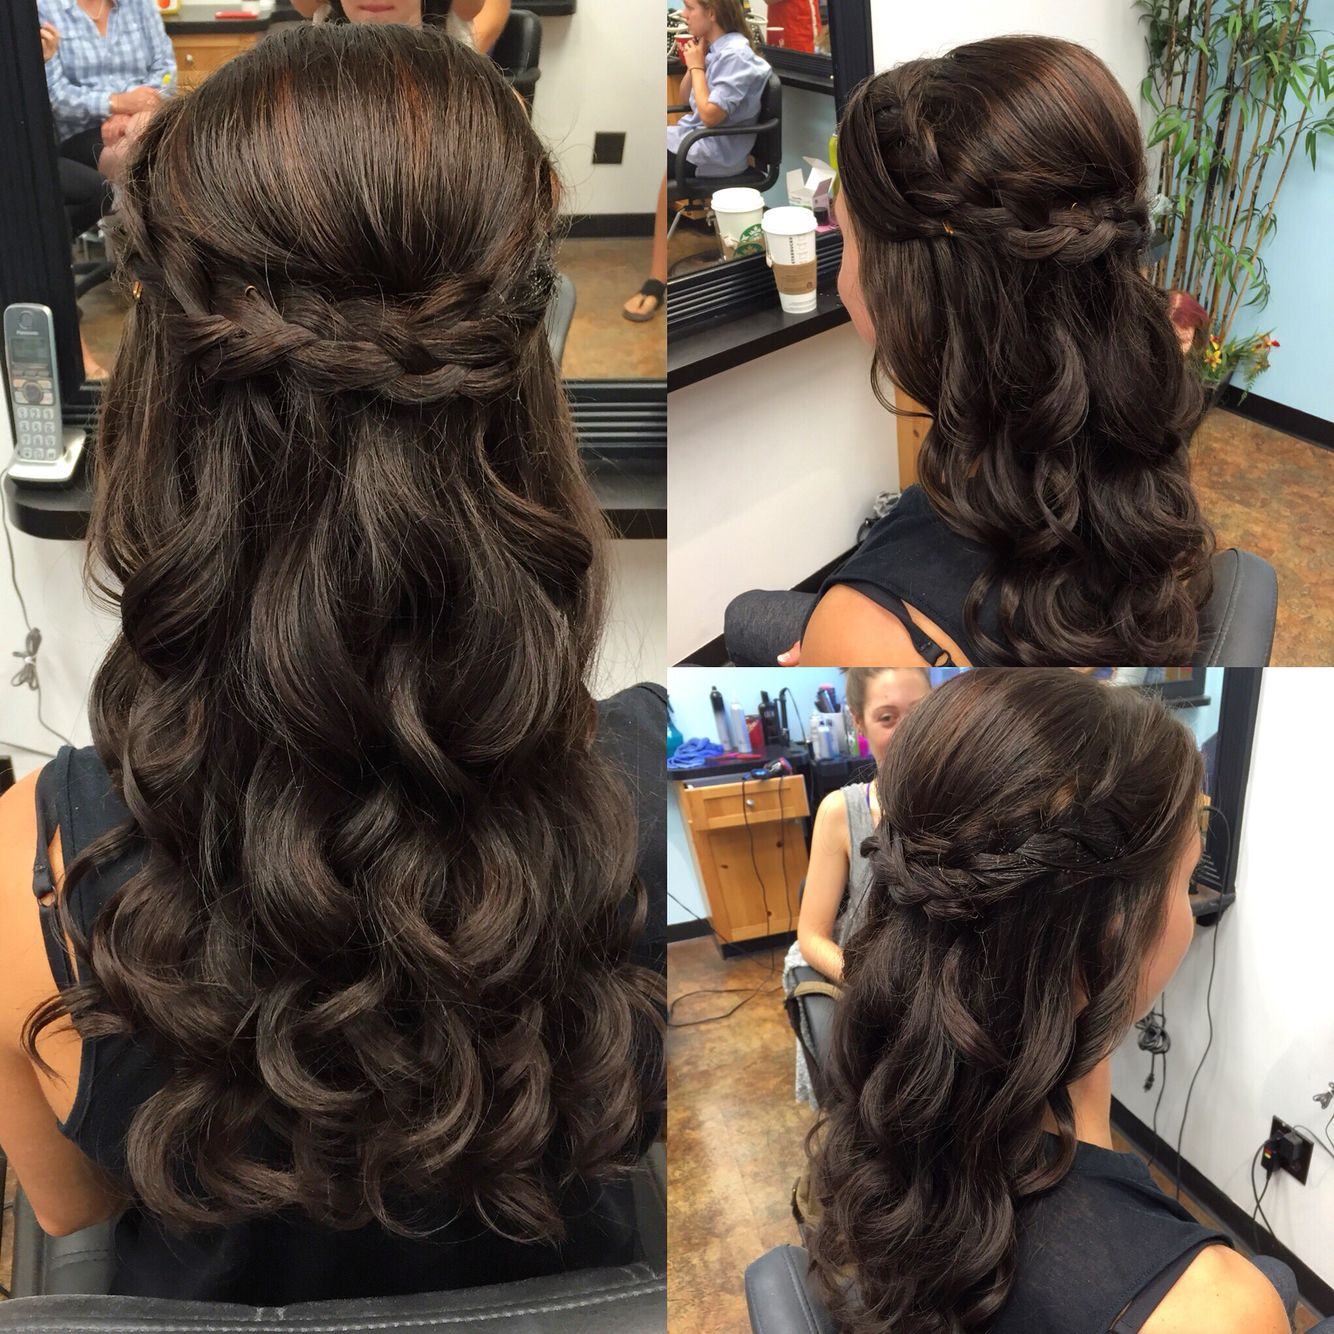 Choose the best hairstyle wedding hair style and prom